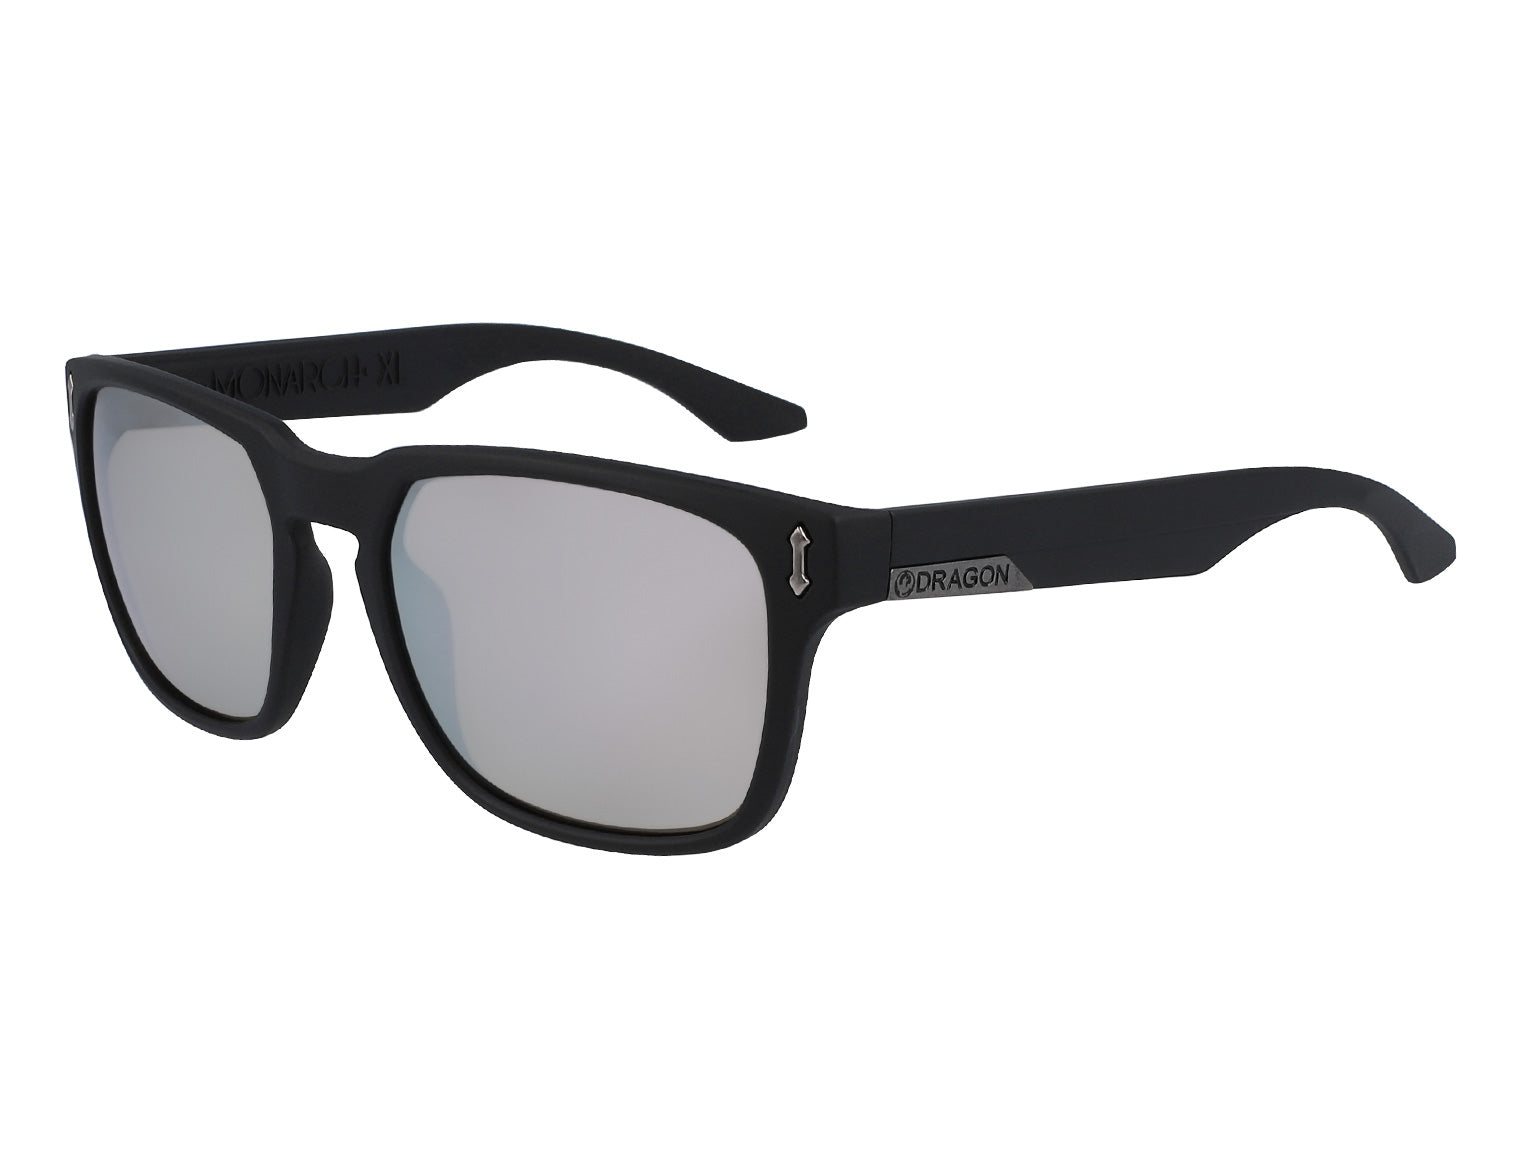 MONARCH XL - Matte Black ; with Lumalens Silver Ionized Lens